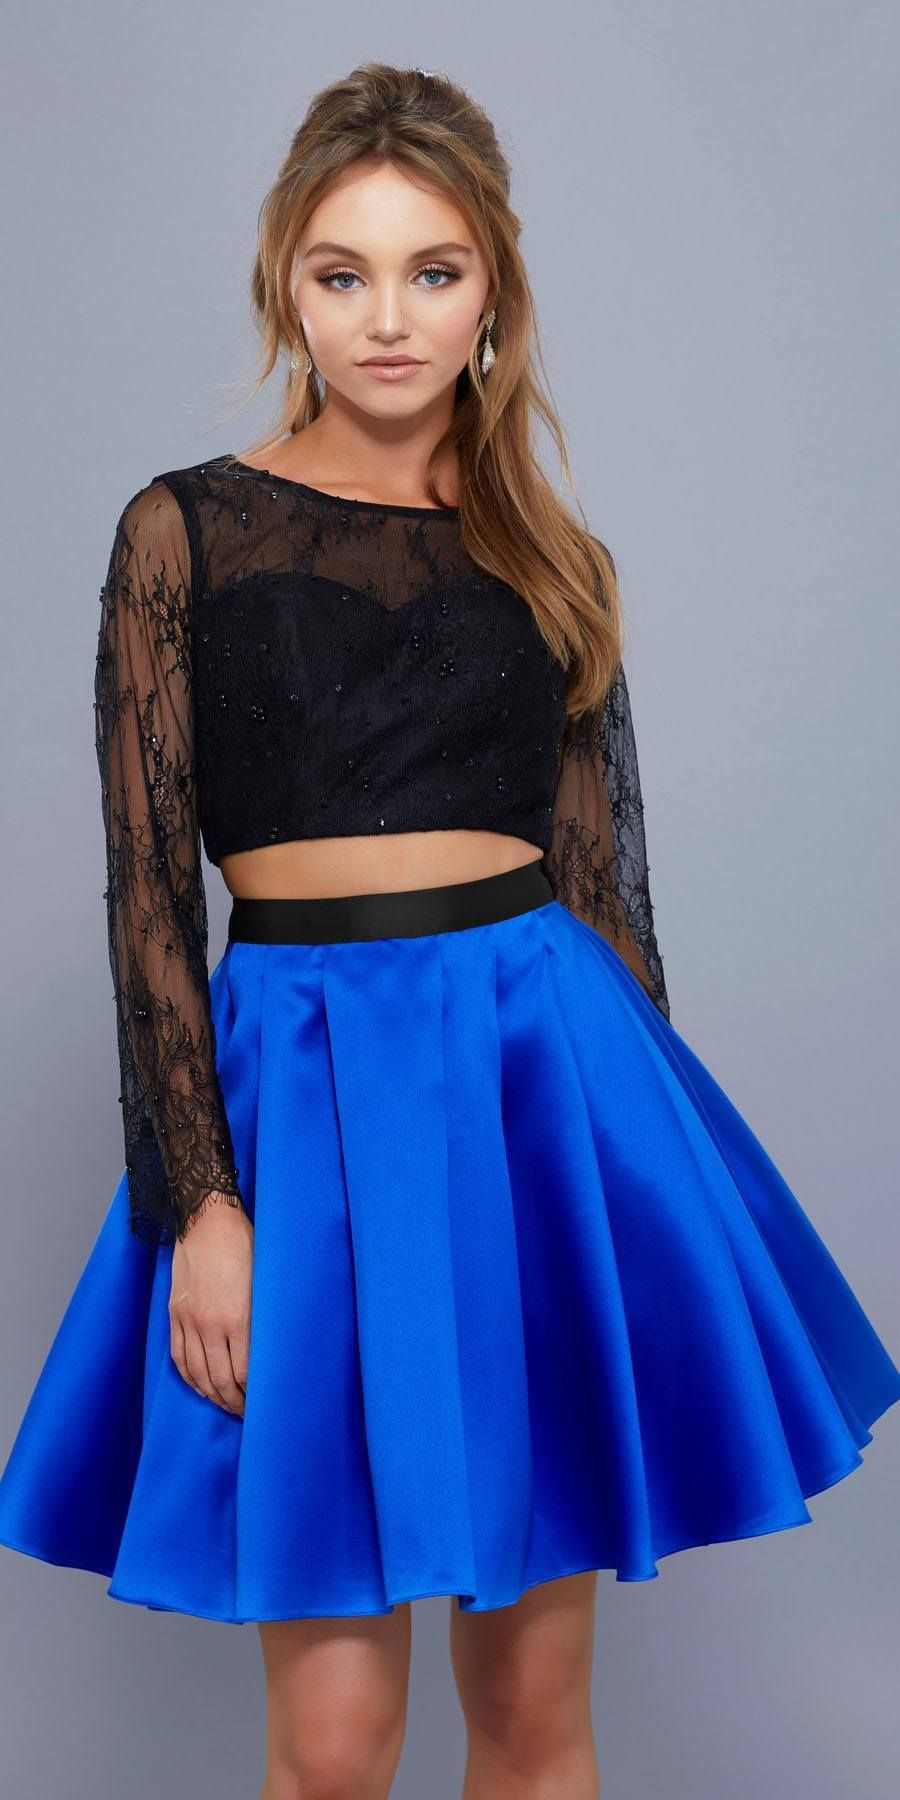 Long sleeves lace top twopiece short prom dress royalblack th